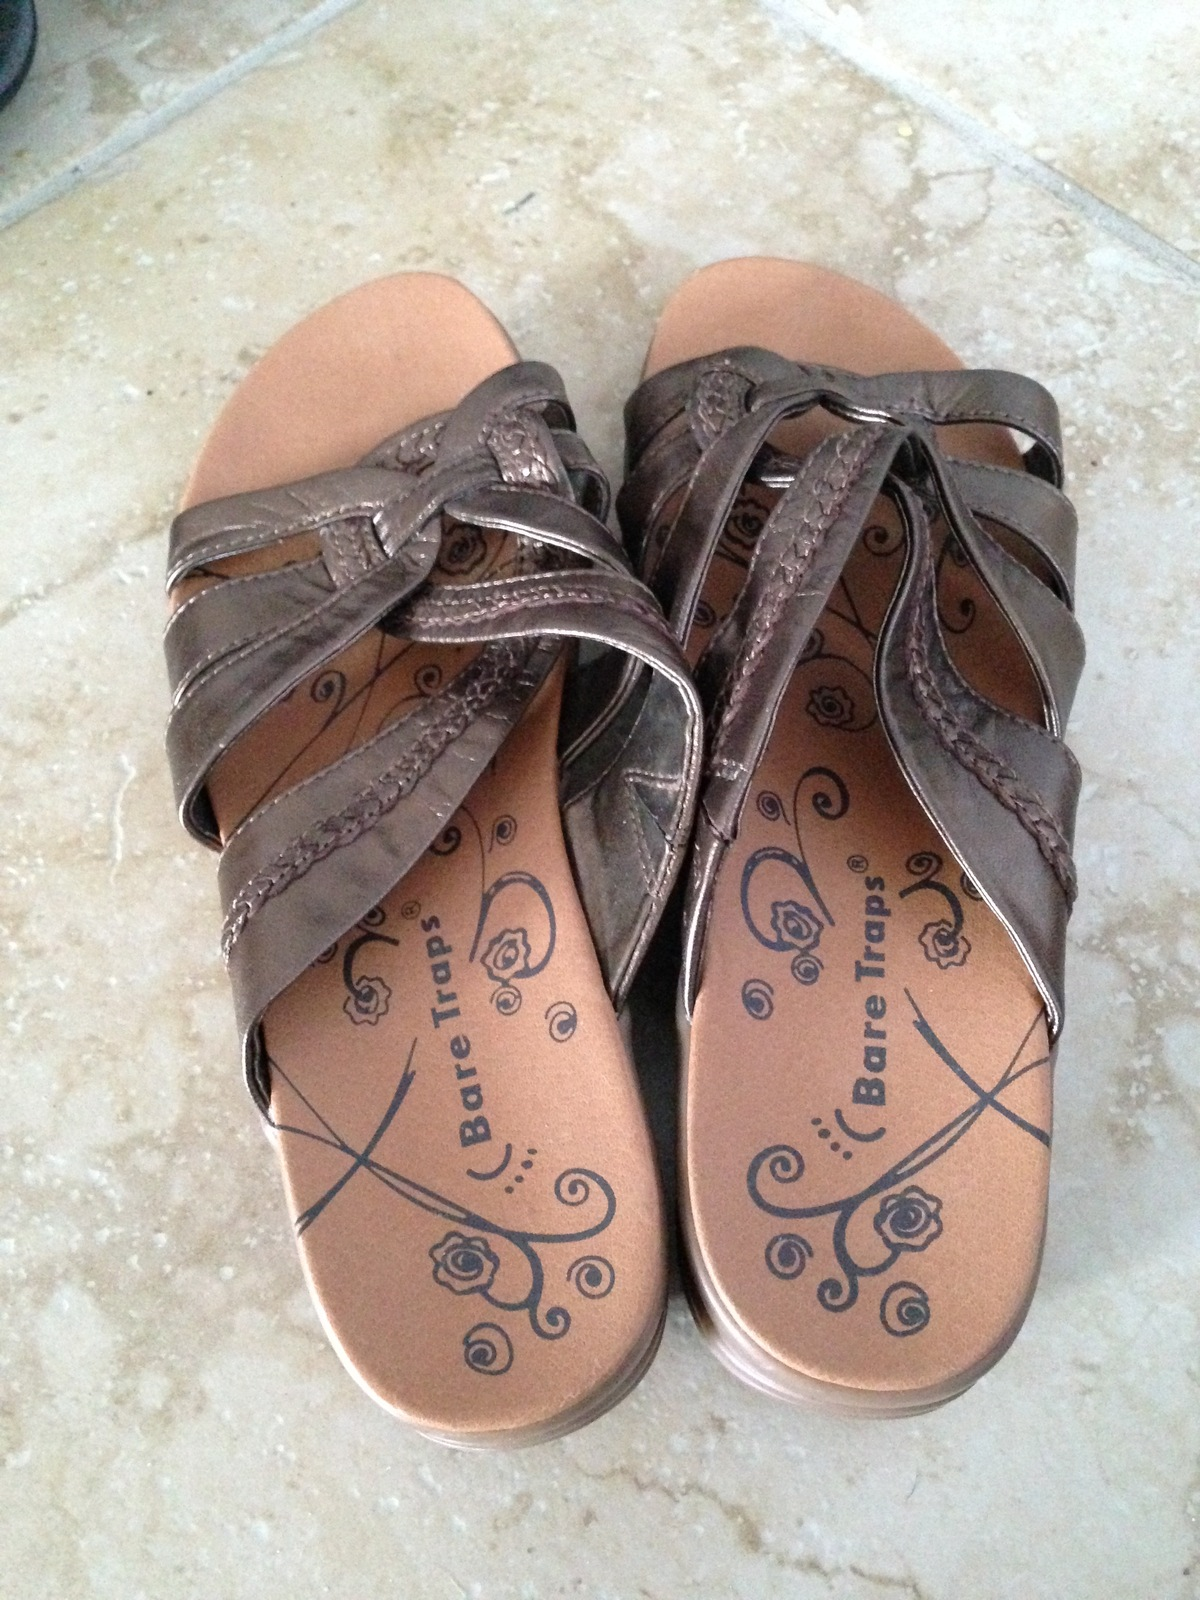 99f94359c7d women s sandals by bare traps size 7.5 medium beautiful condition -  24.99